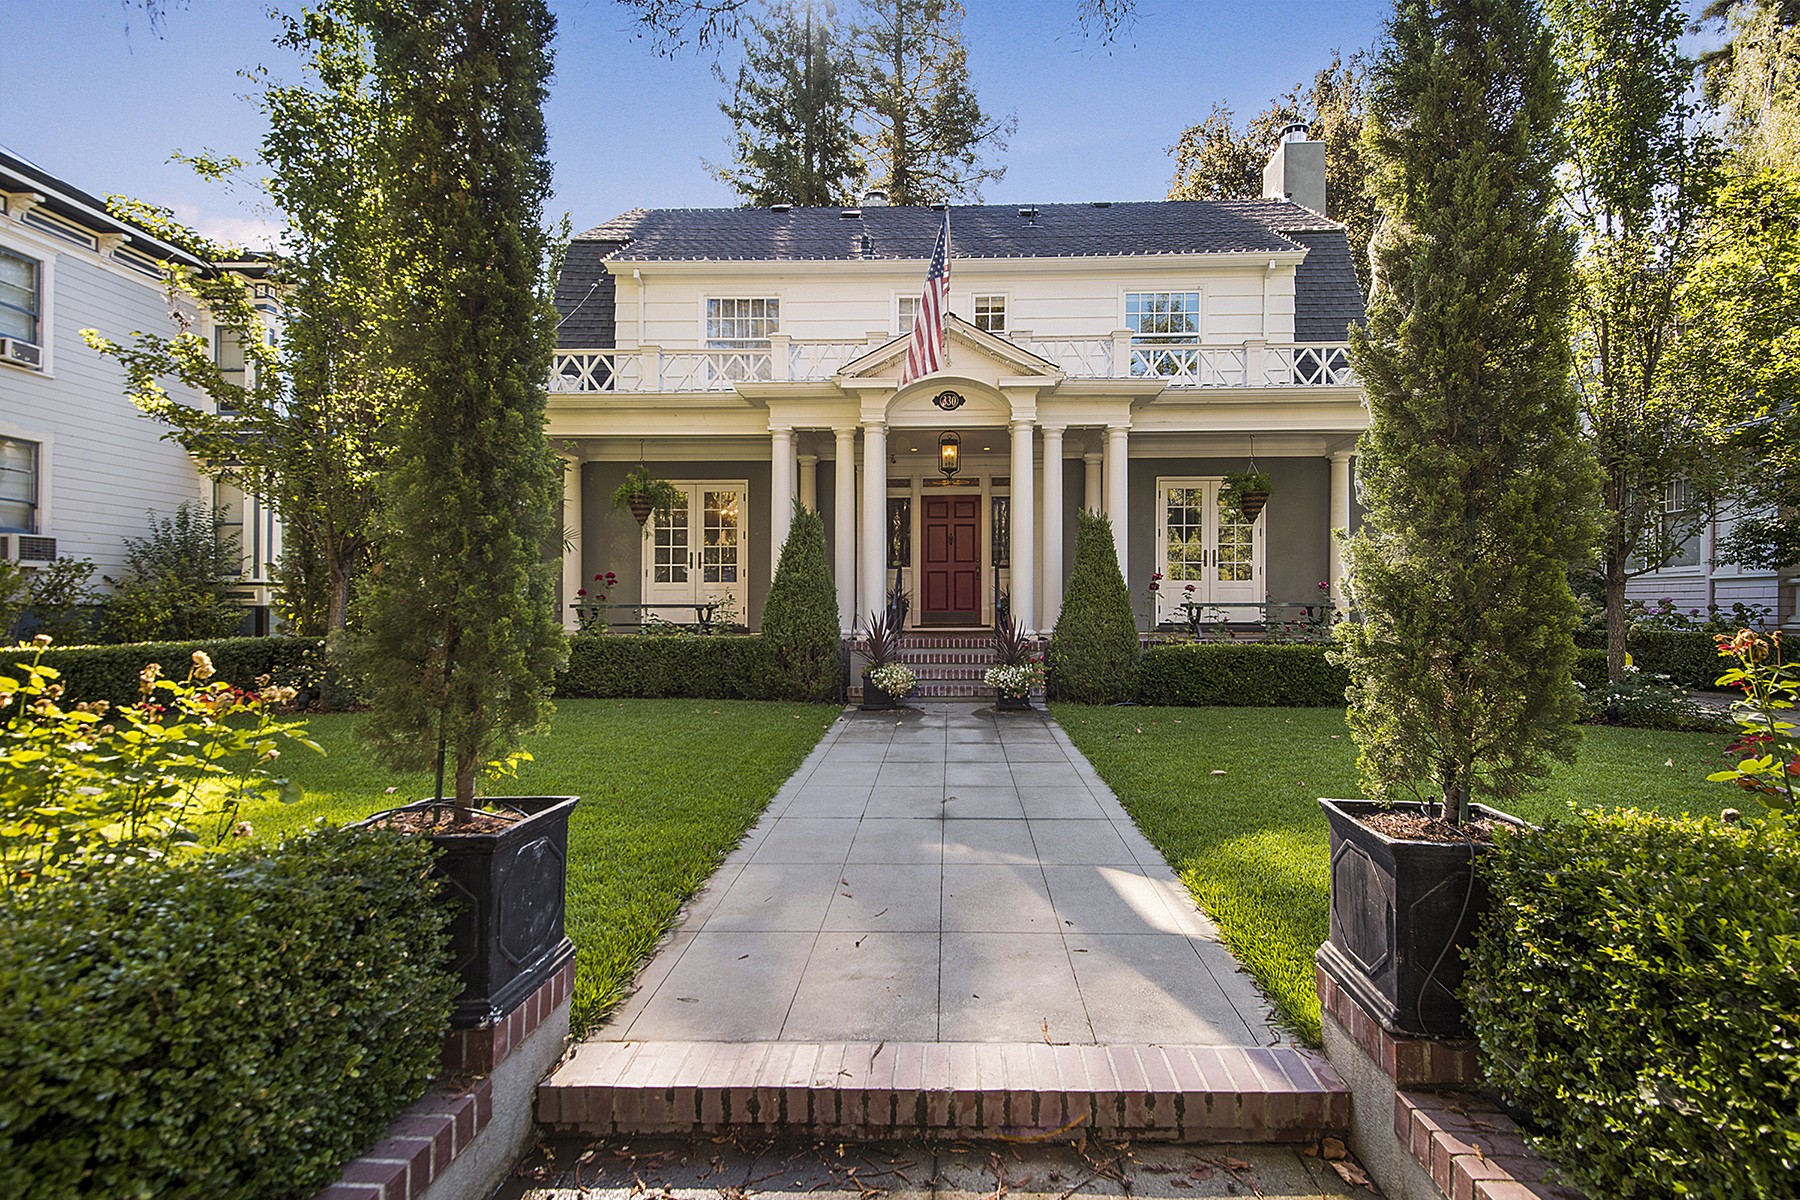 Single Family Home for Sale at 330 Franklin St, Napa, CA 94559 330 Franklin St Napa, California, 94559 United States